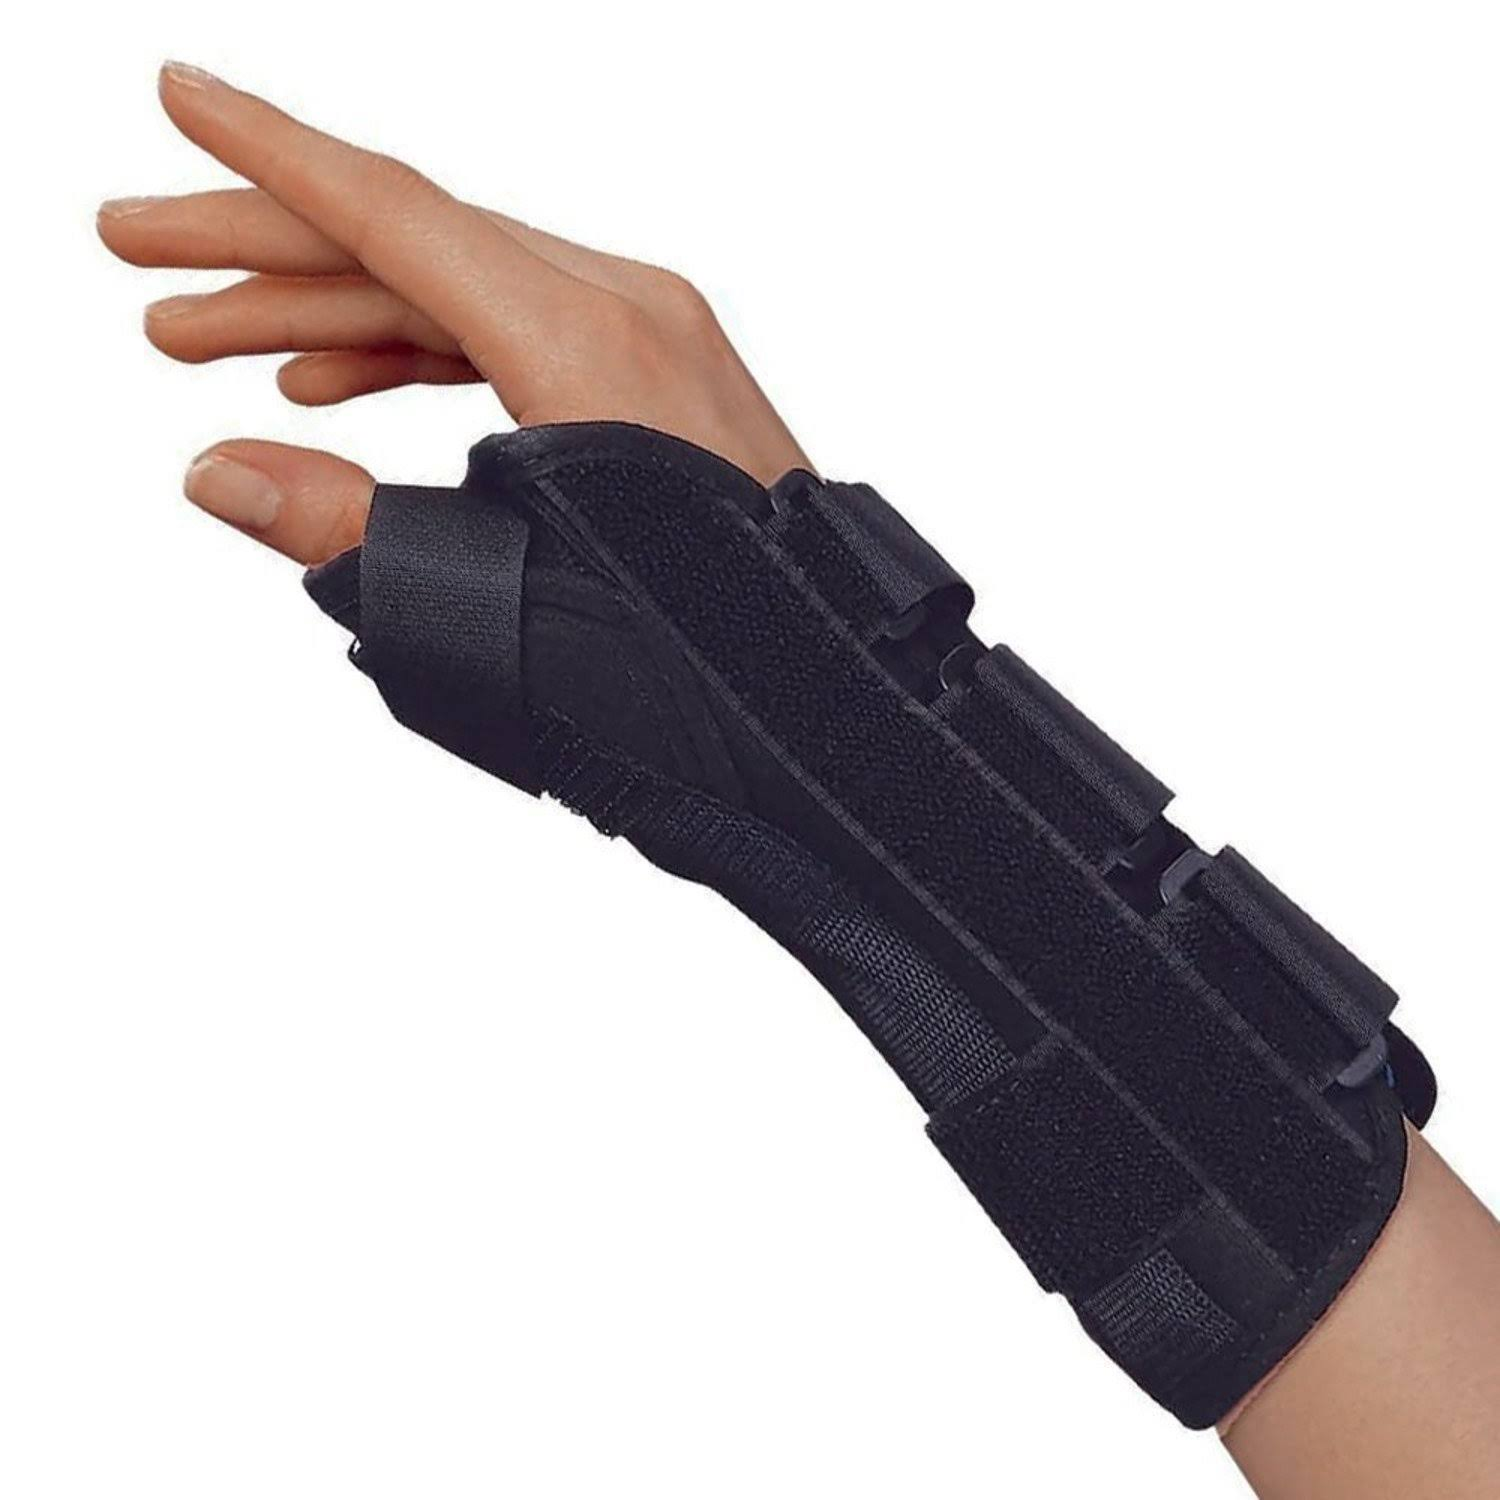 OTC 2087 Lightweight Breathable Wrist Thumb Splint - Right, Large